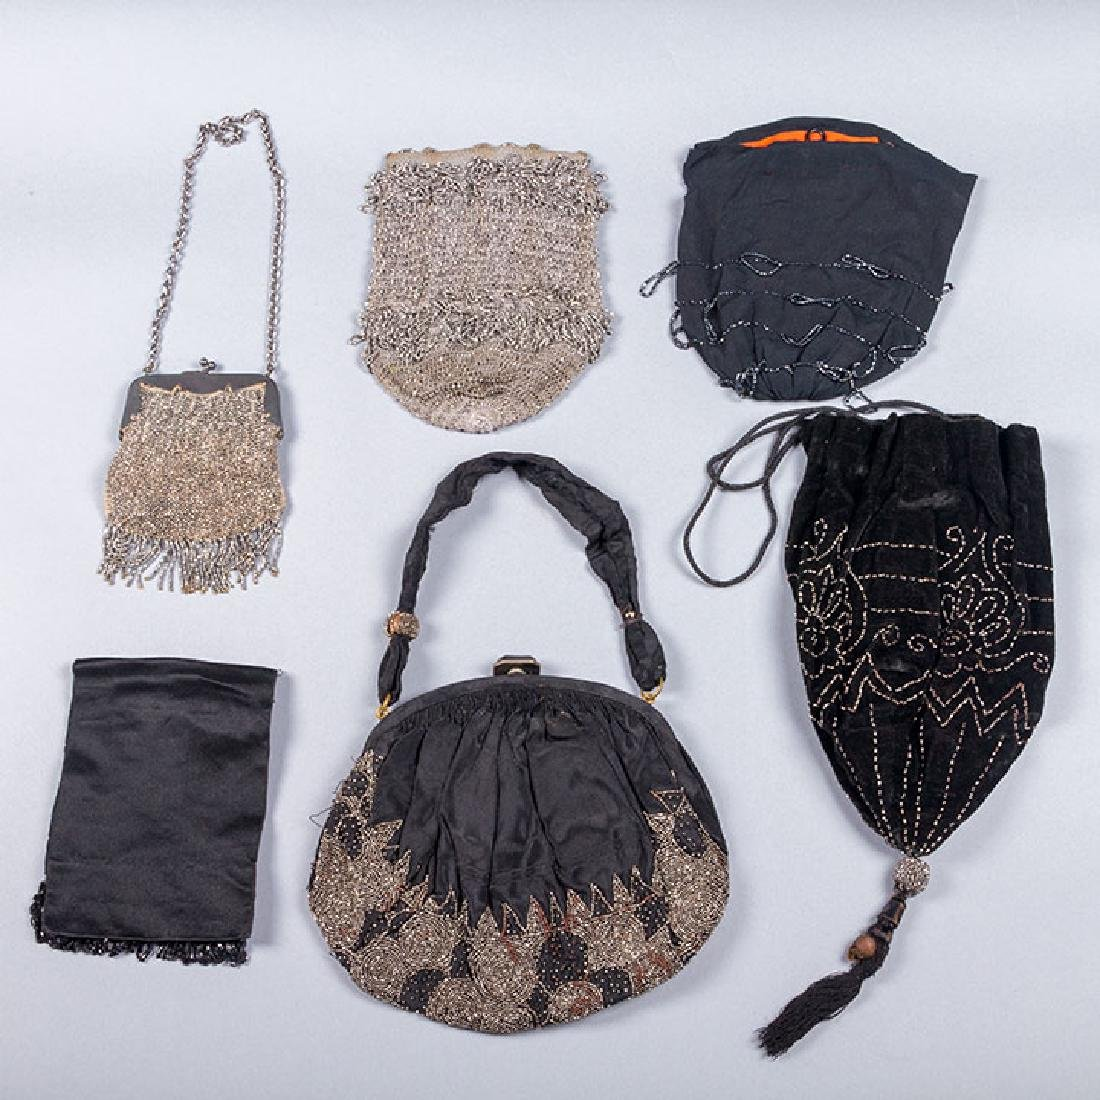 7 RED, SILVER & BLACK BEADED BAGS, 1900-1920s - 3